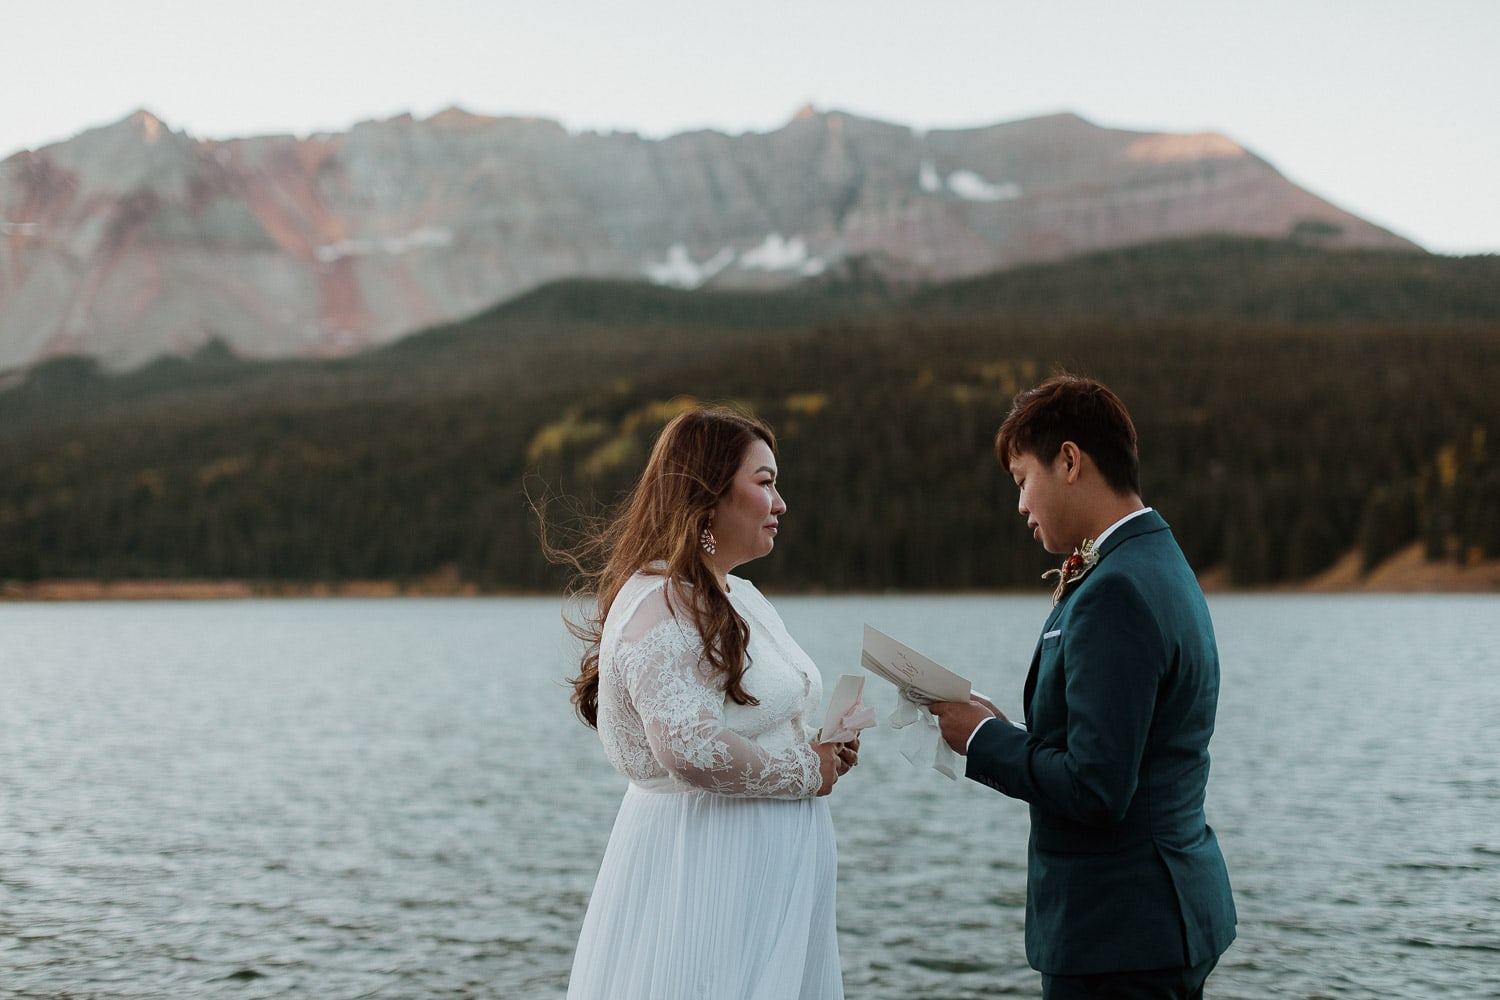 groom reads out loud vows during ceremony at alpine lake